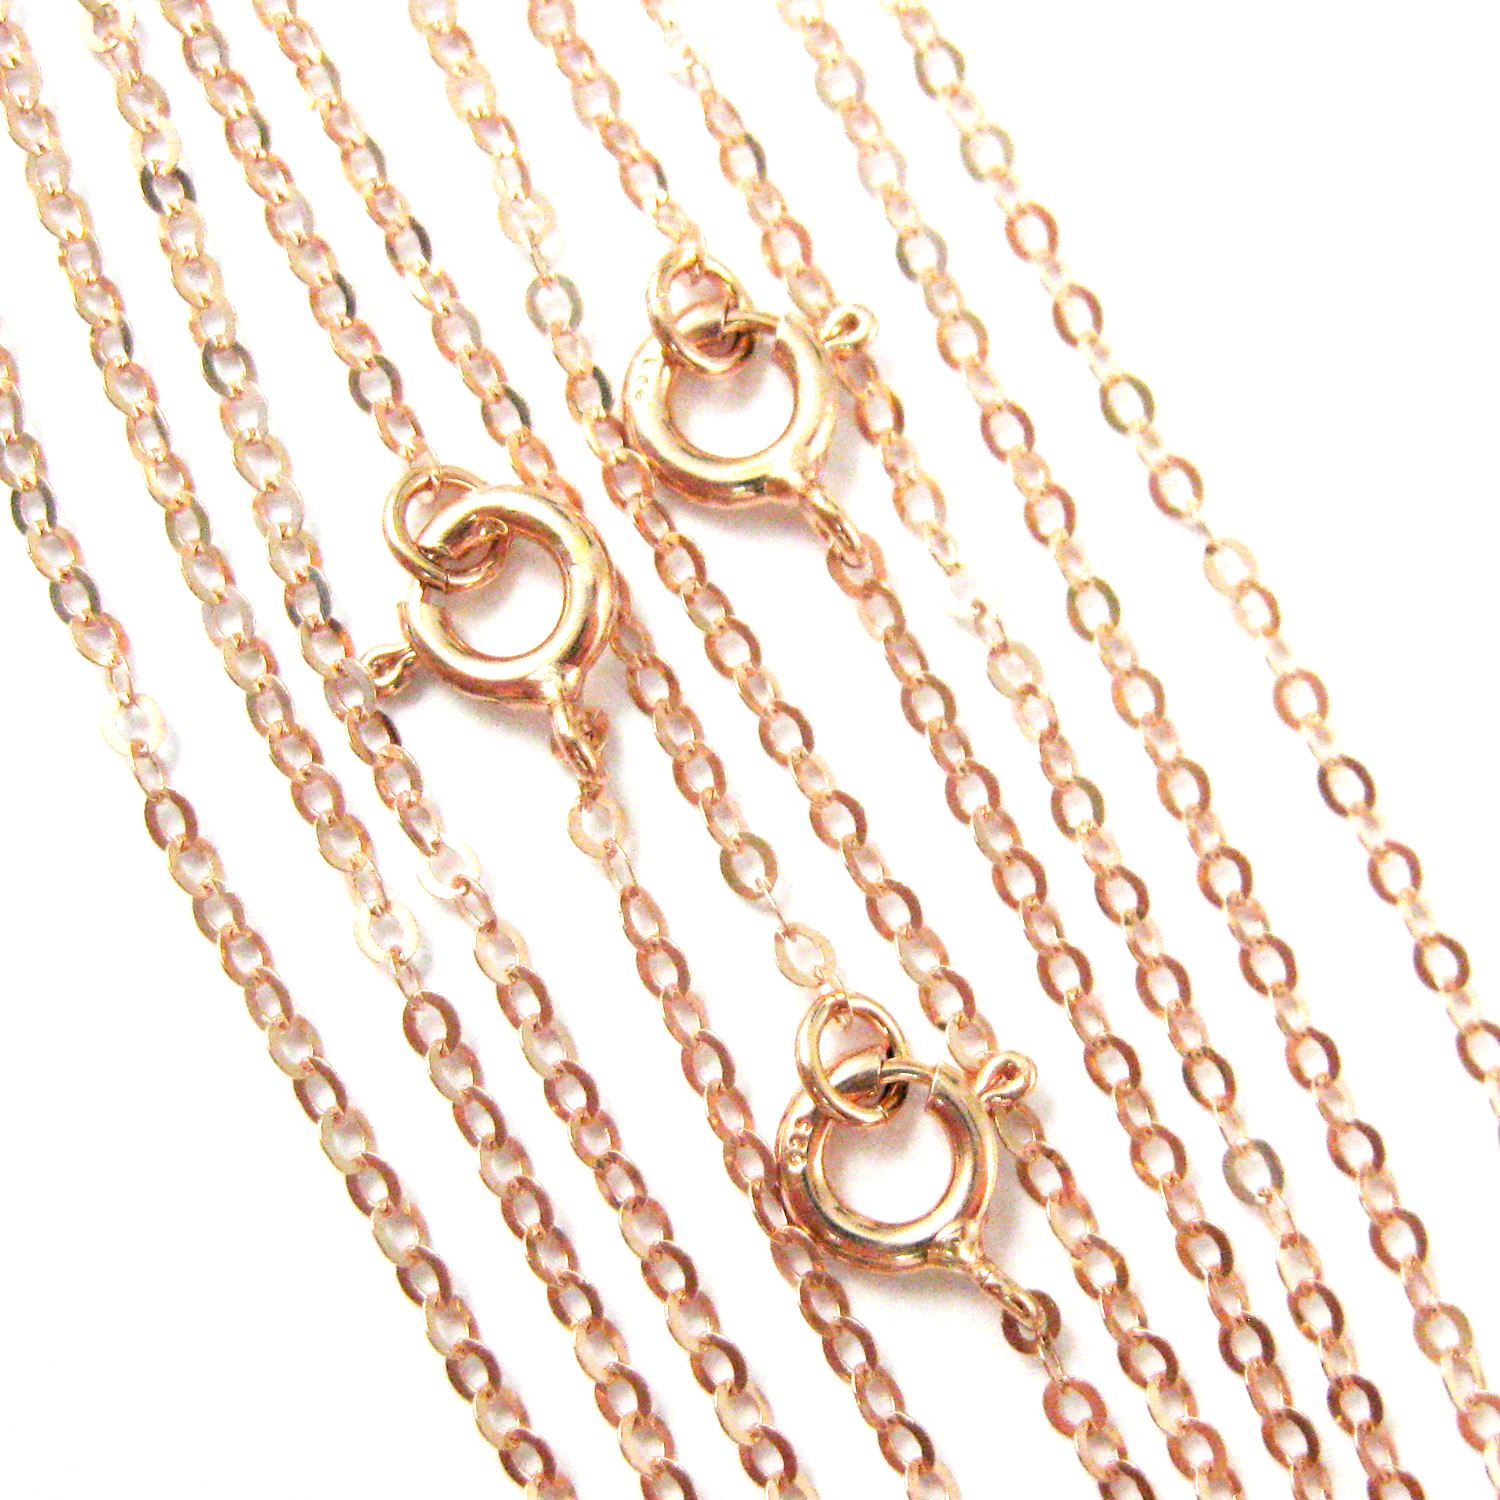 Rose Gold Plated Sterling Silver Necklace - 925 Italian Sterling Silver Chain - Light Flat Cable - Long Necklace - All Sizes